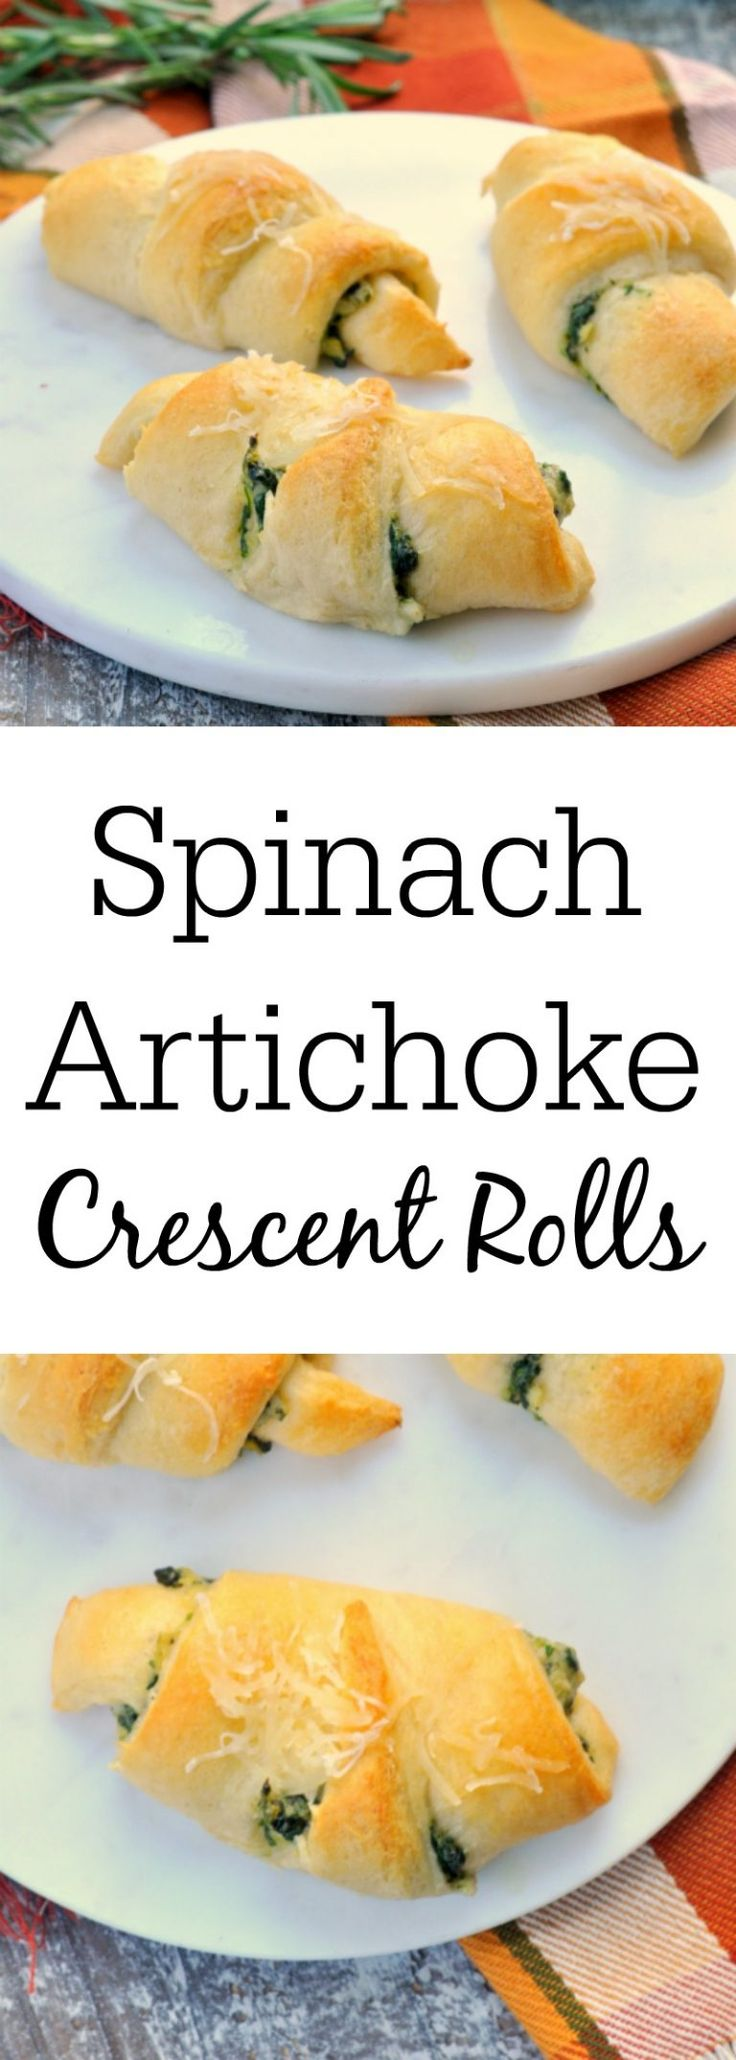 Spinach Artichoke Crescent Rolls - An Immaculate Holiday Appetizer - My Suburban Kitchen